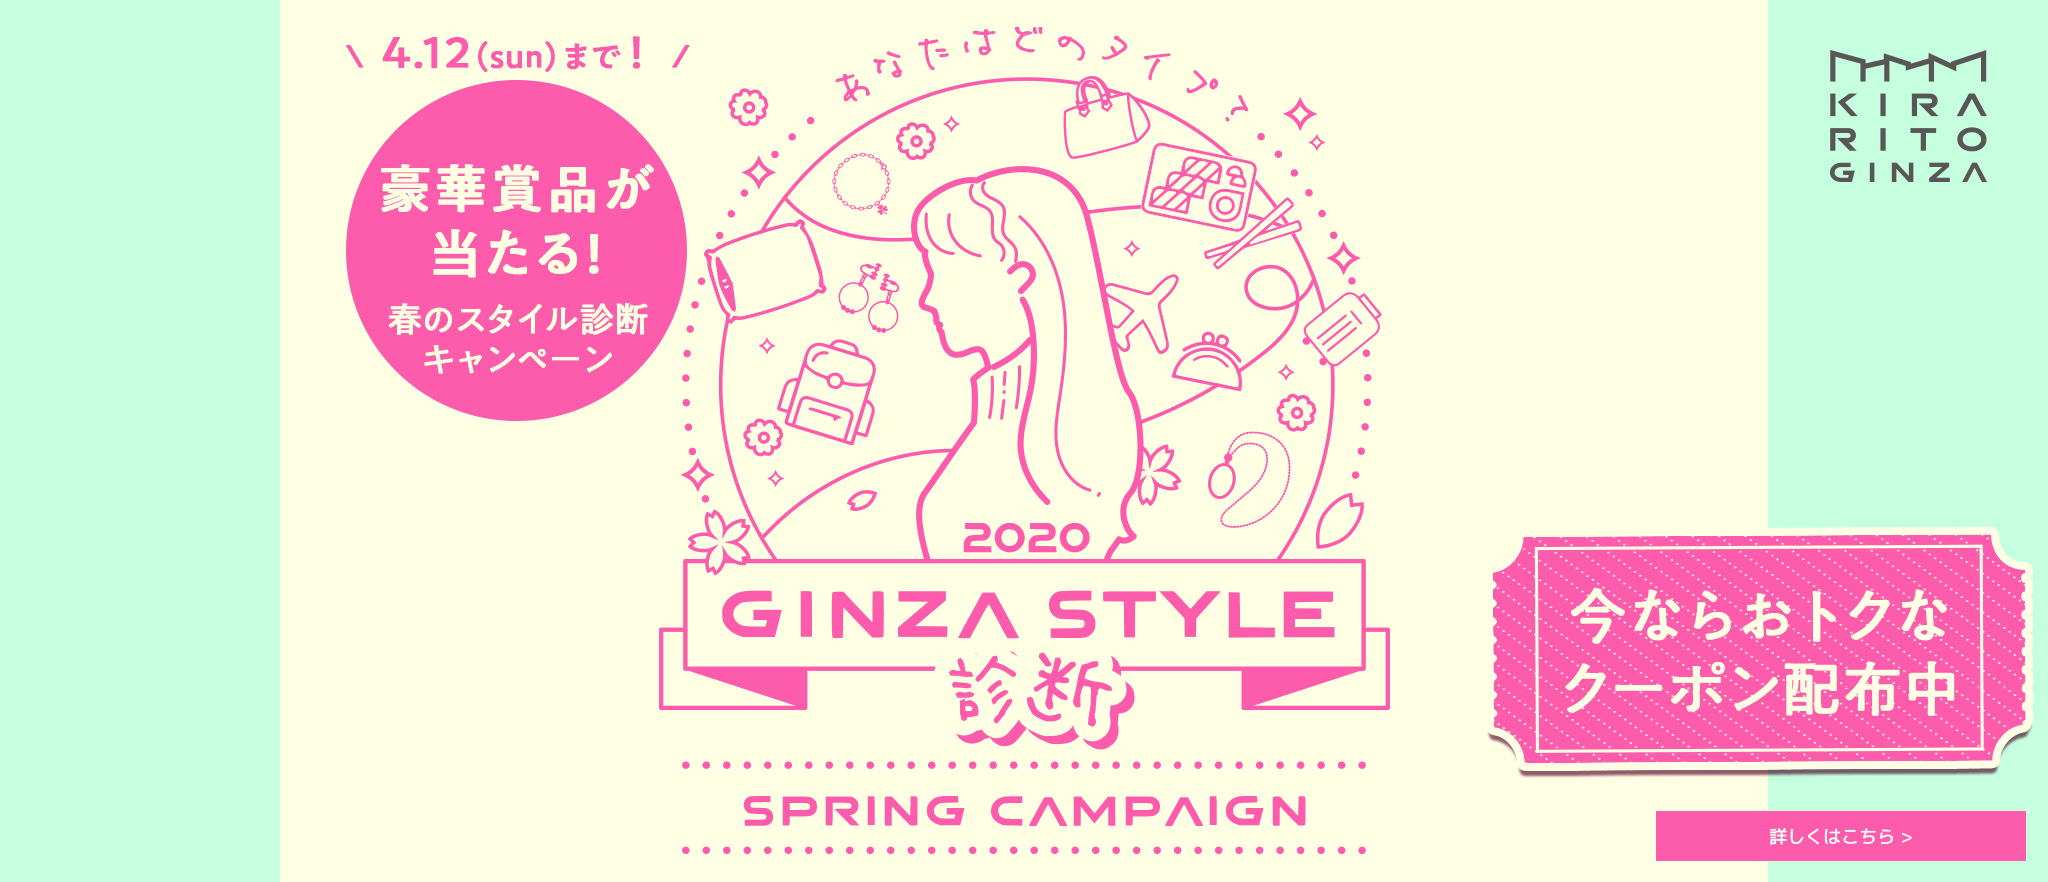 GINZA STYLE診断 SPRING CAMPAIGN